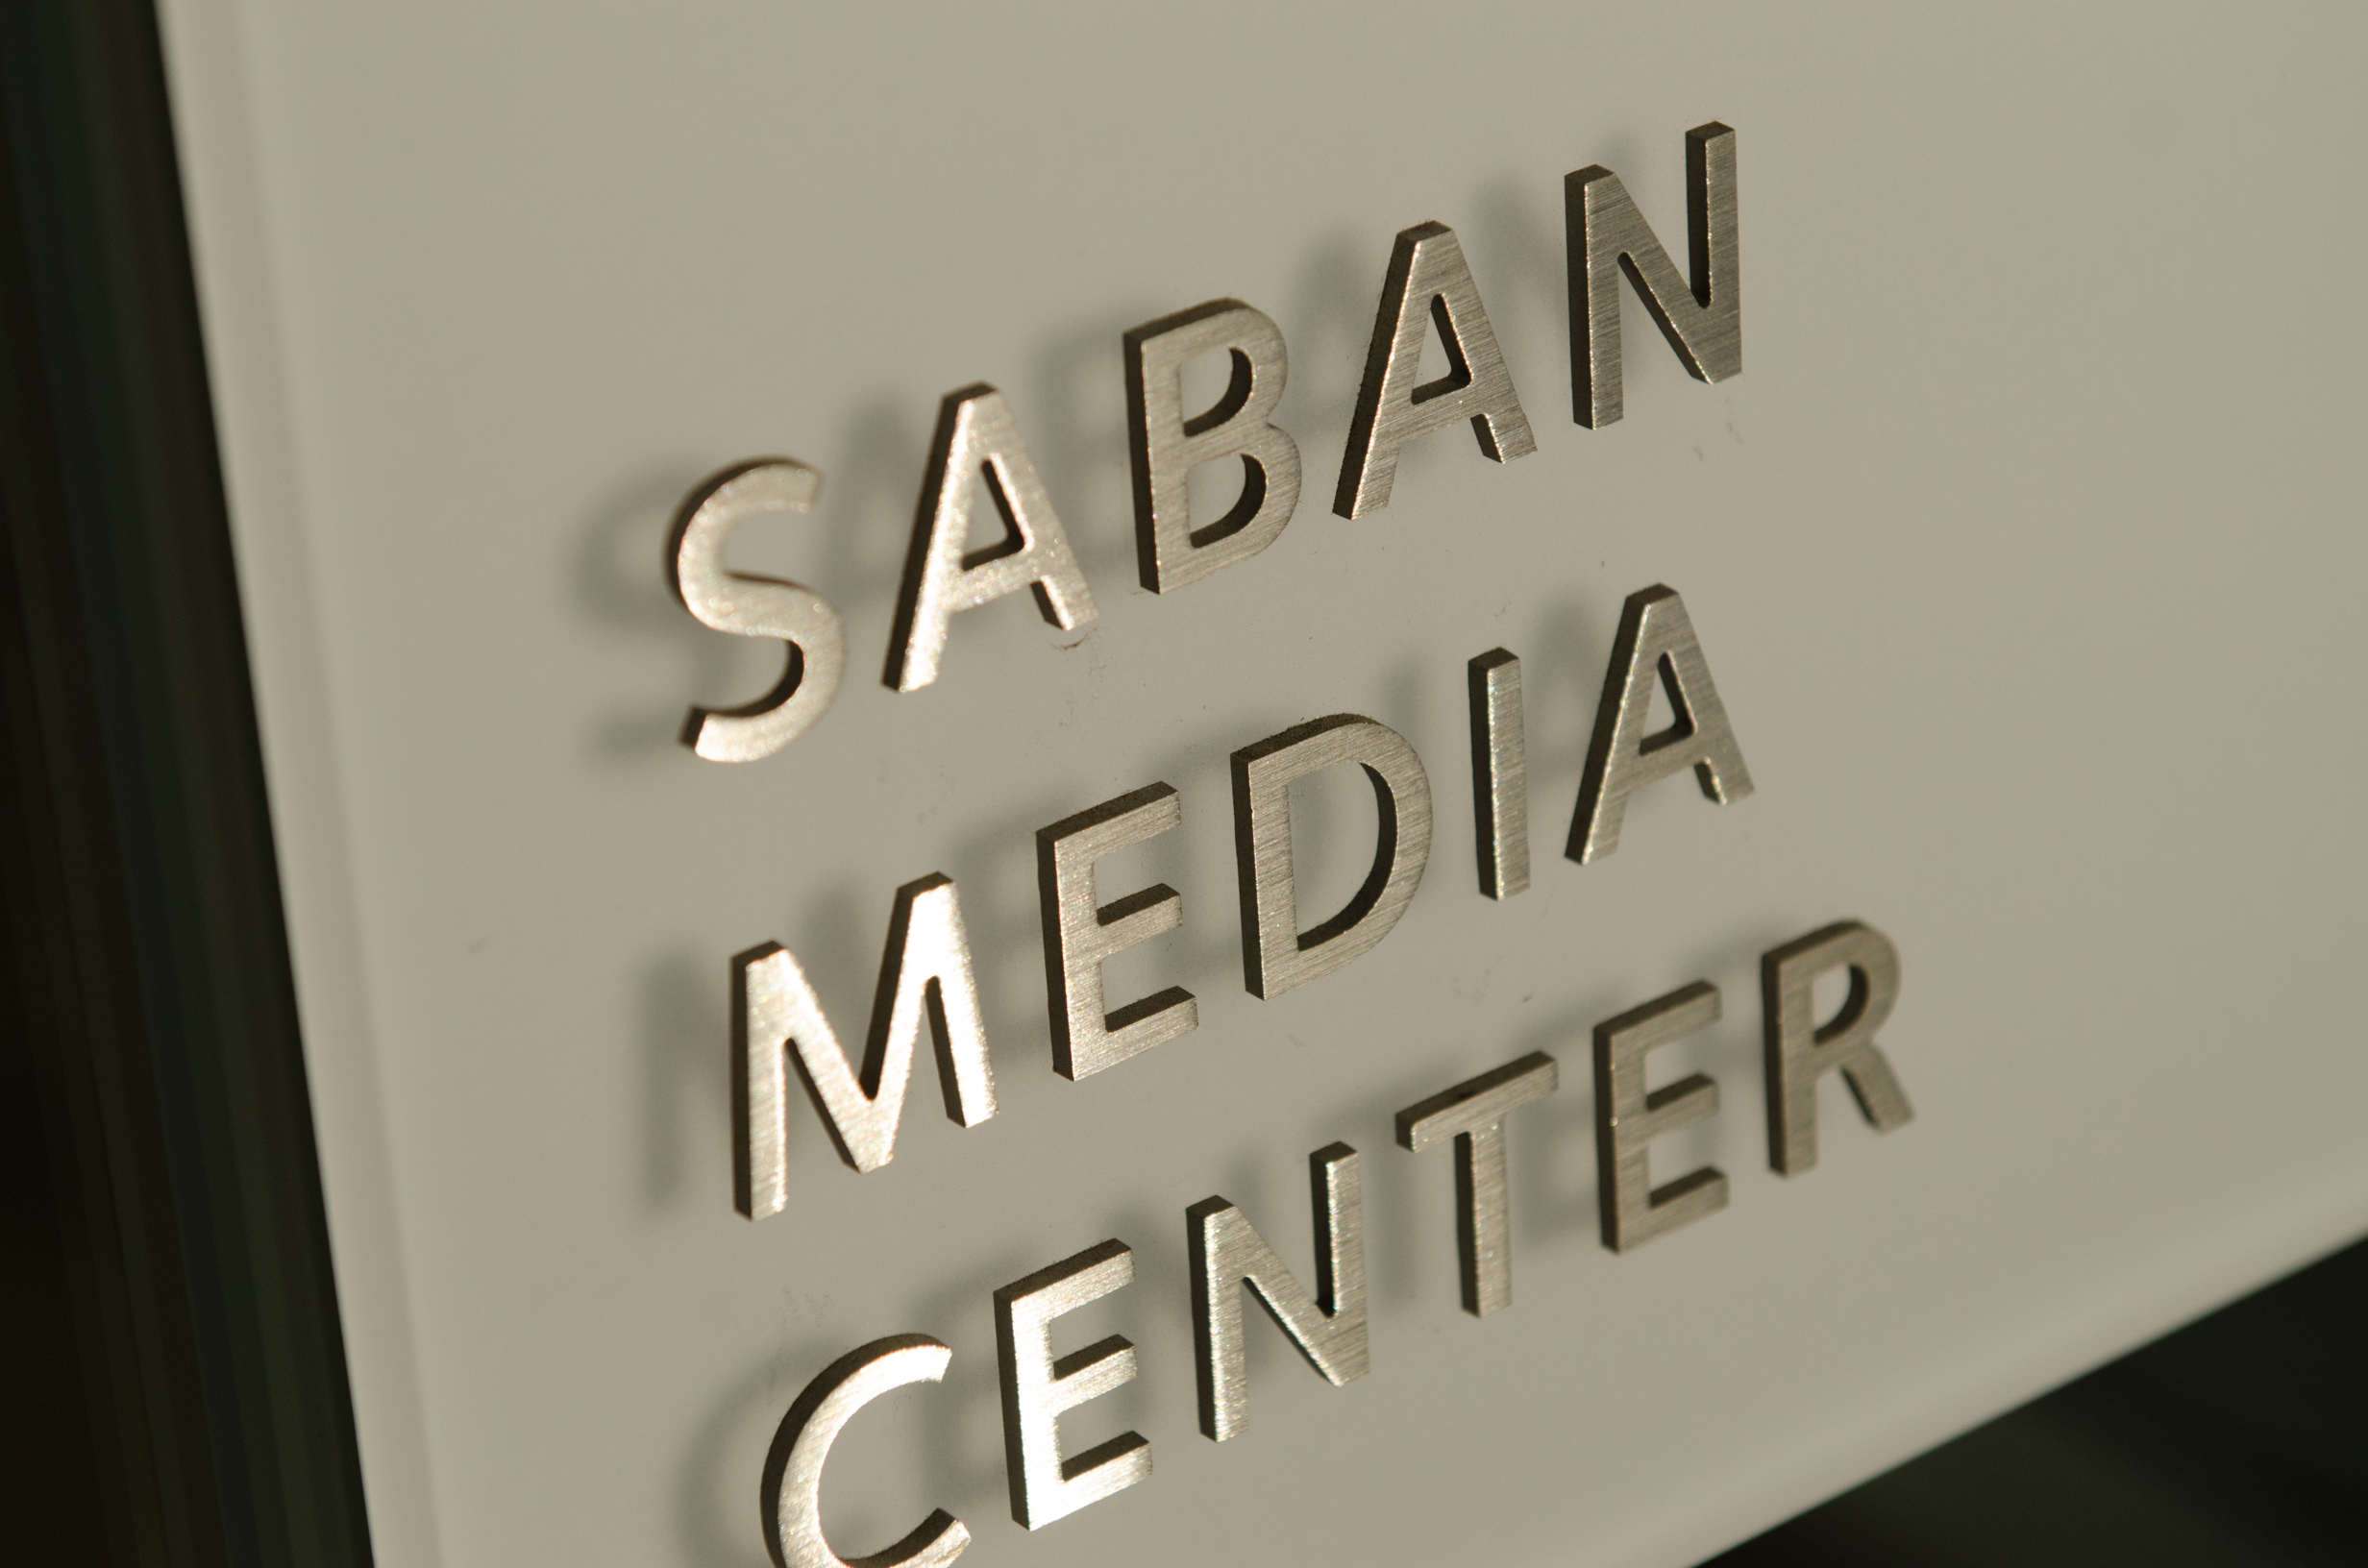 Television Academy_Saban Door Sign-1.jpg